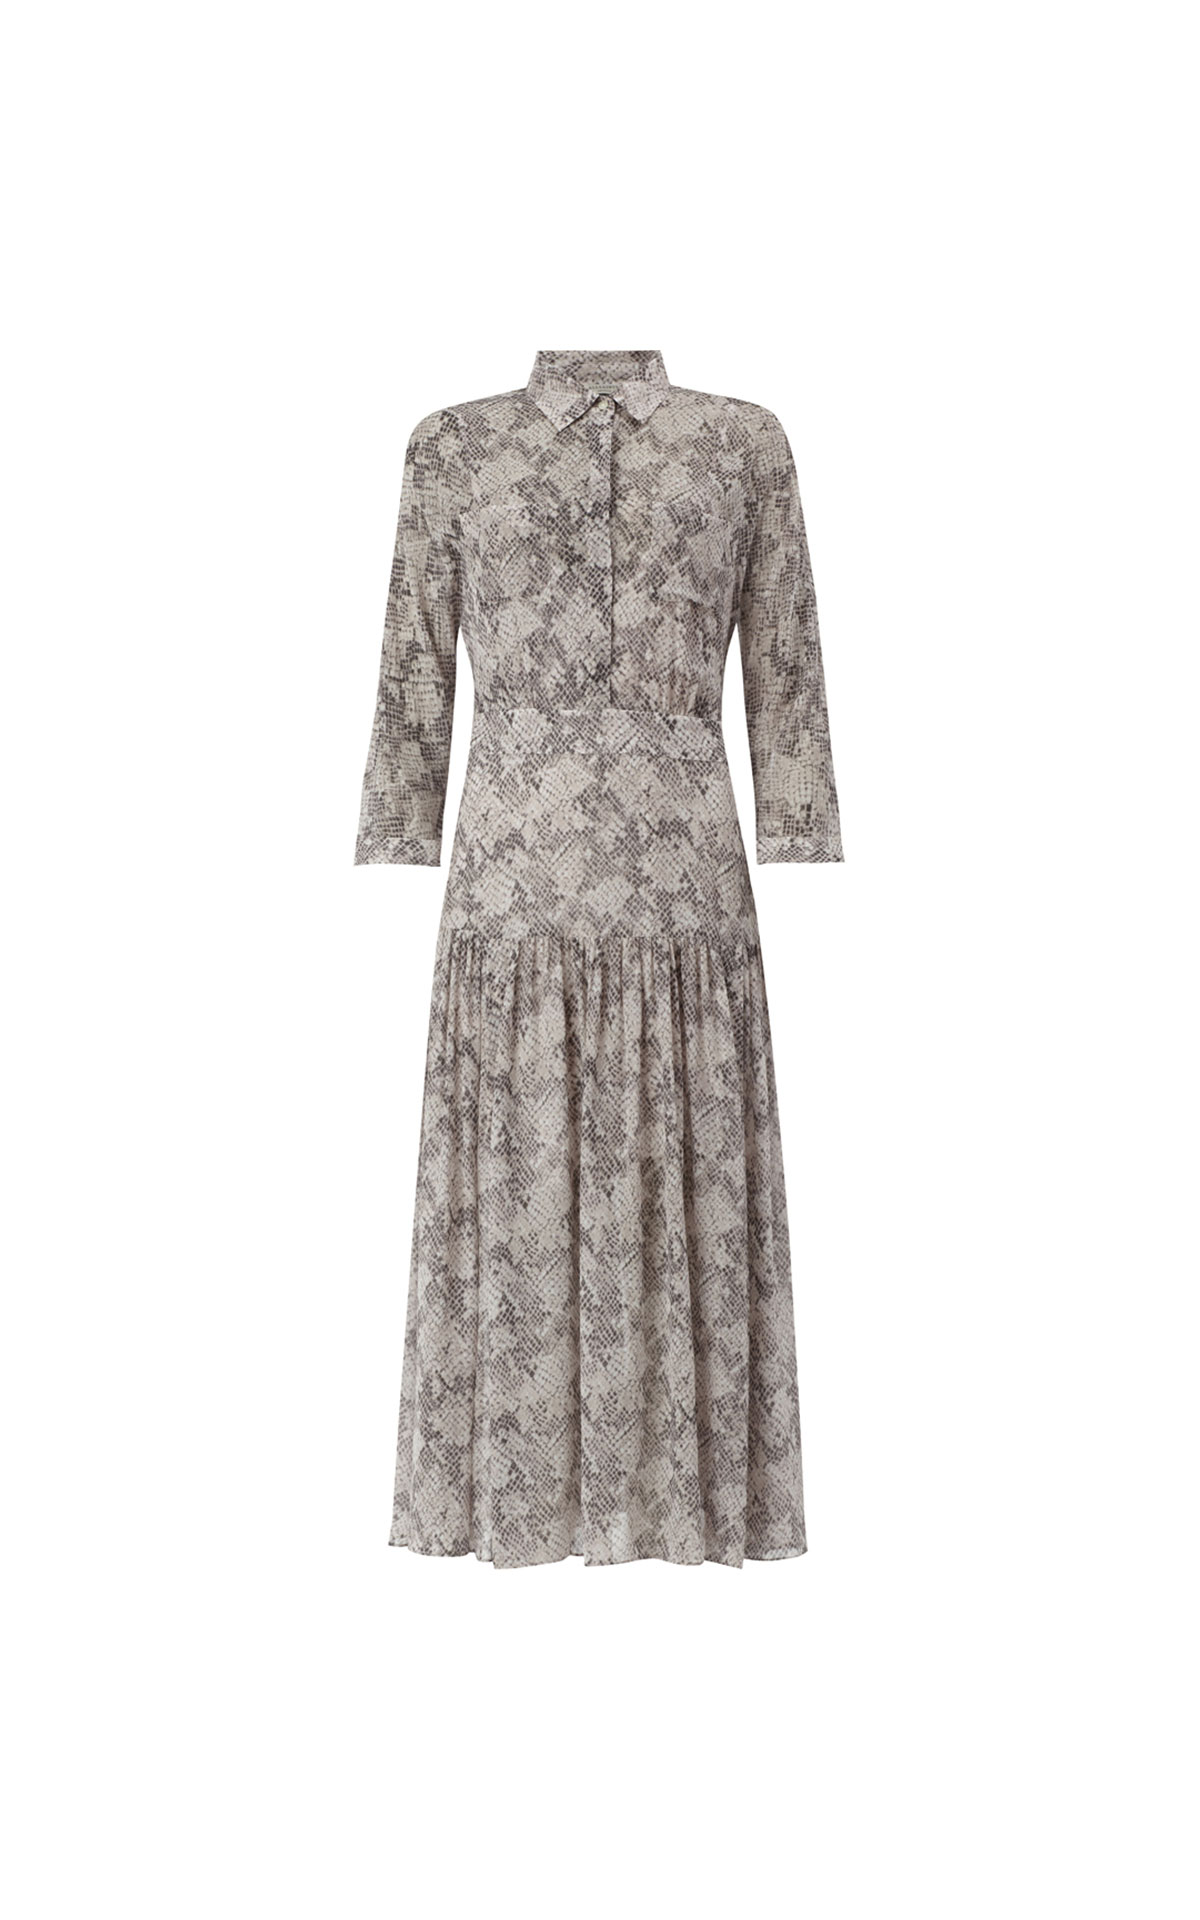 AllSaints Eley midgard dress from Bicester Village